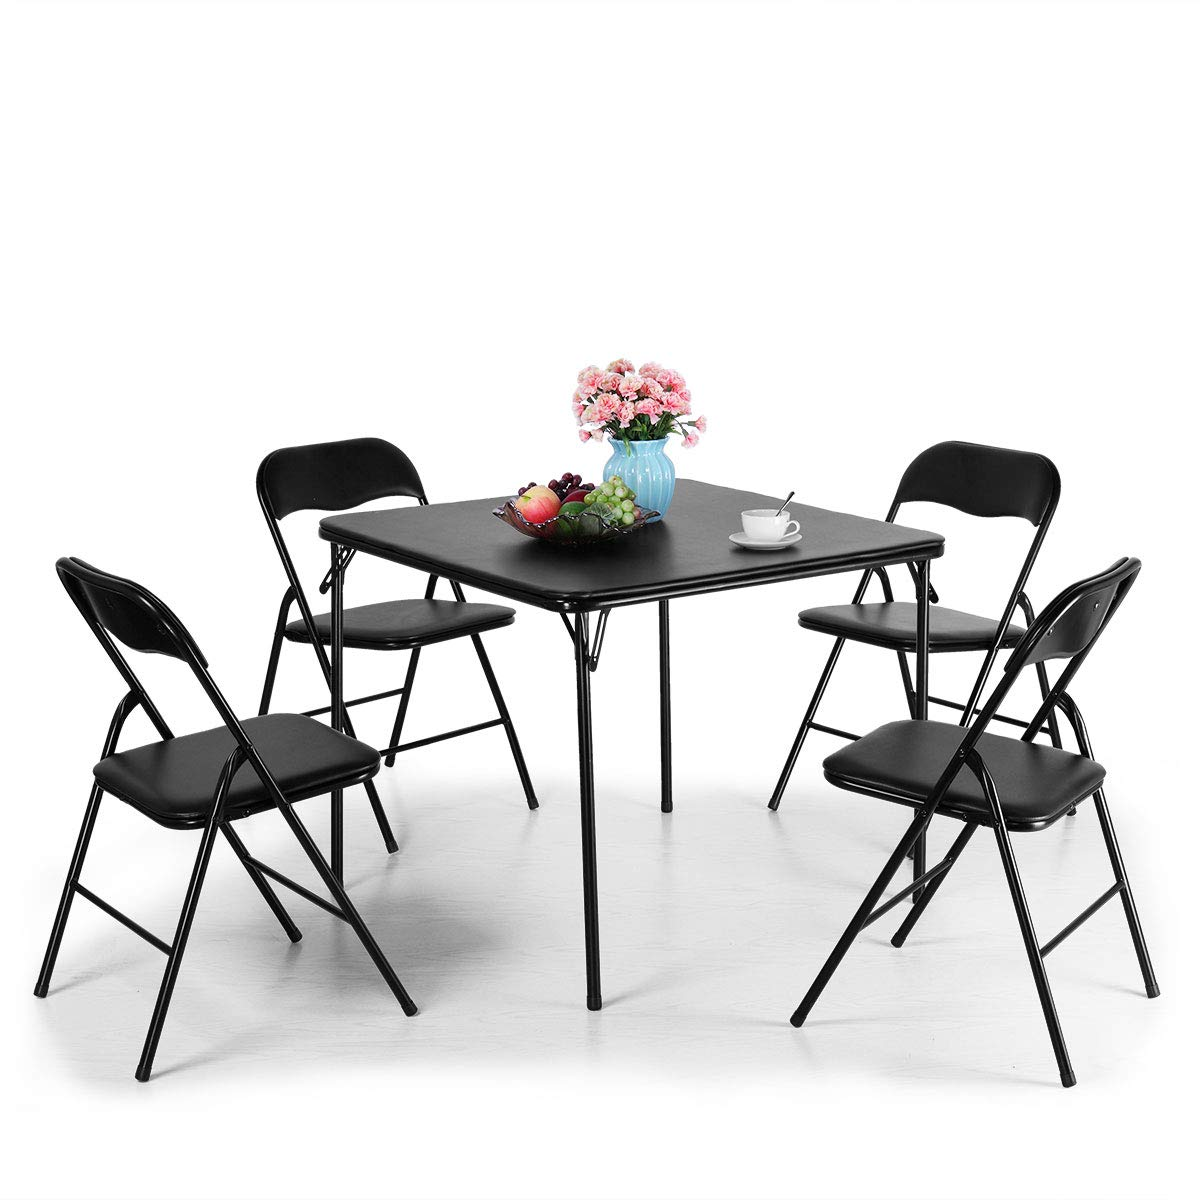 JAXPETY 5-Piece Folding Table and Chairs Set Multipurpose Kitchen Dining Games Table Set 1 Table 4 Chairs w/Padded Seat, Black